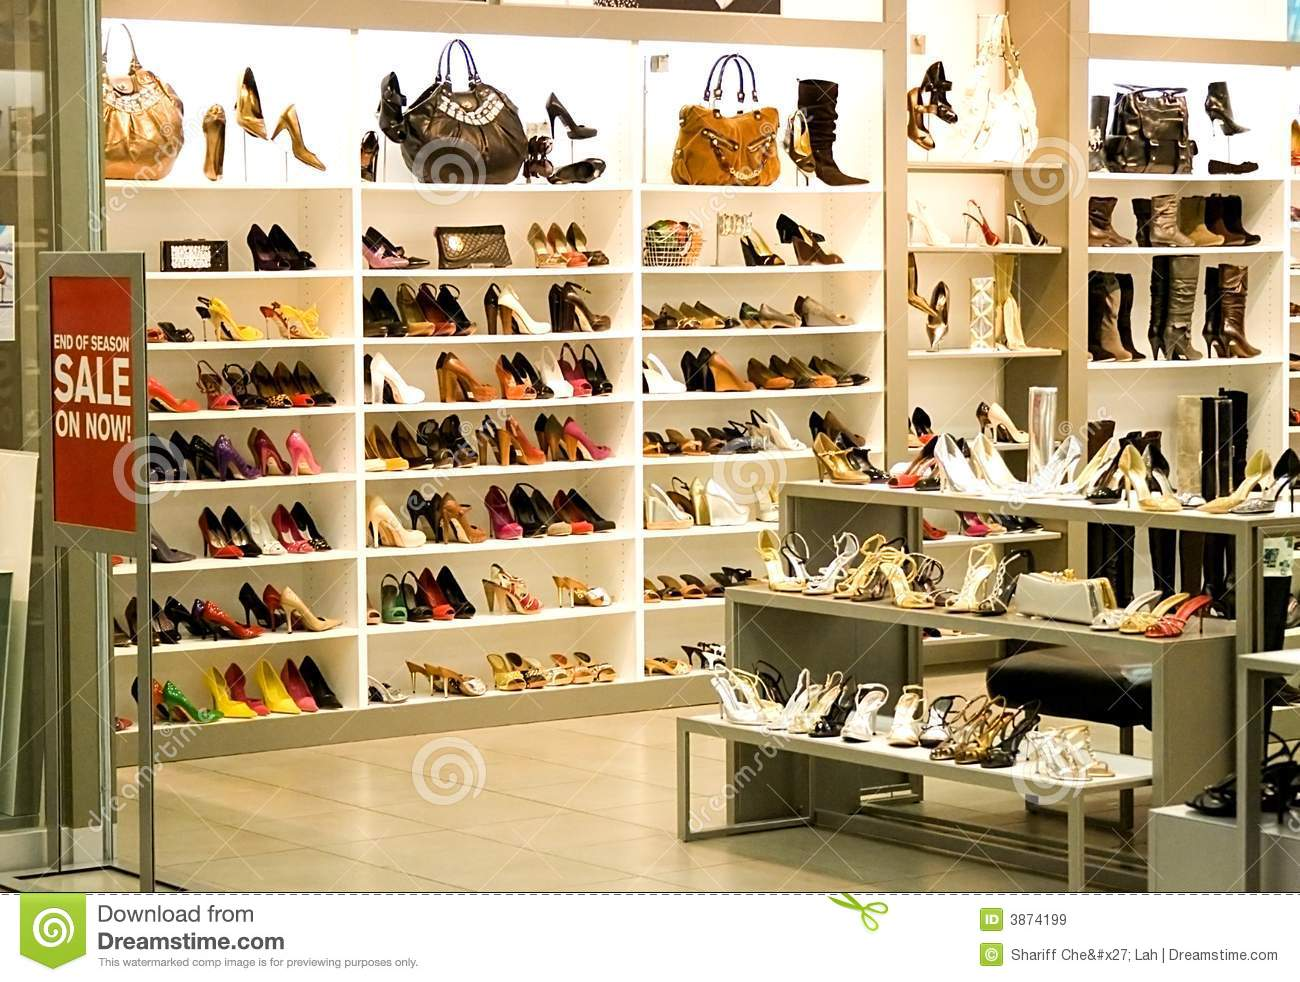 a322f9ff5 Shoe Shop stock image. Image of style, footwear, shopping - 3874199